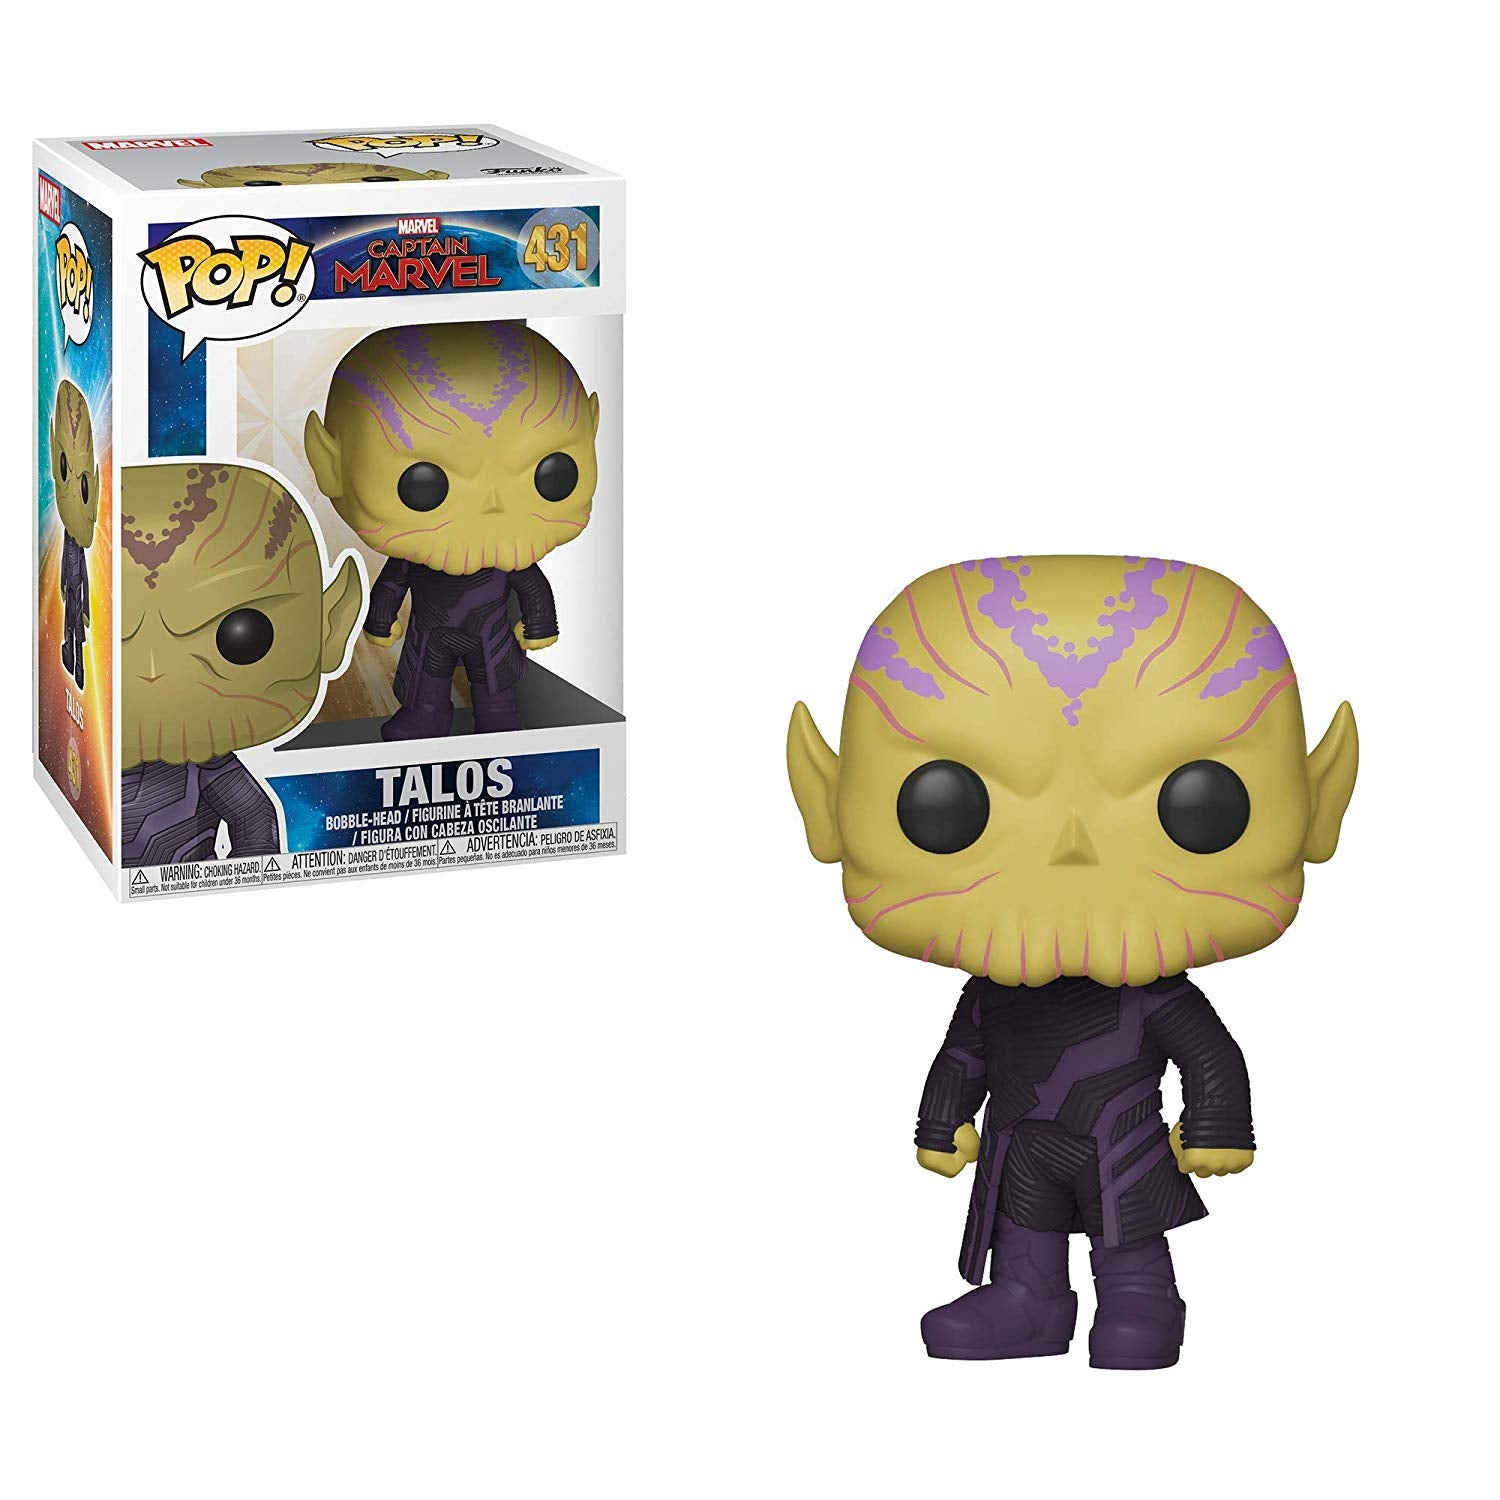 Funko Pop Marvel: Captain Marvel - Talos #431